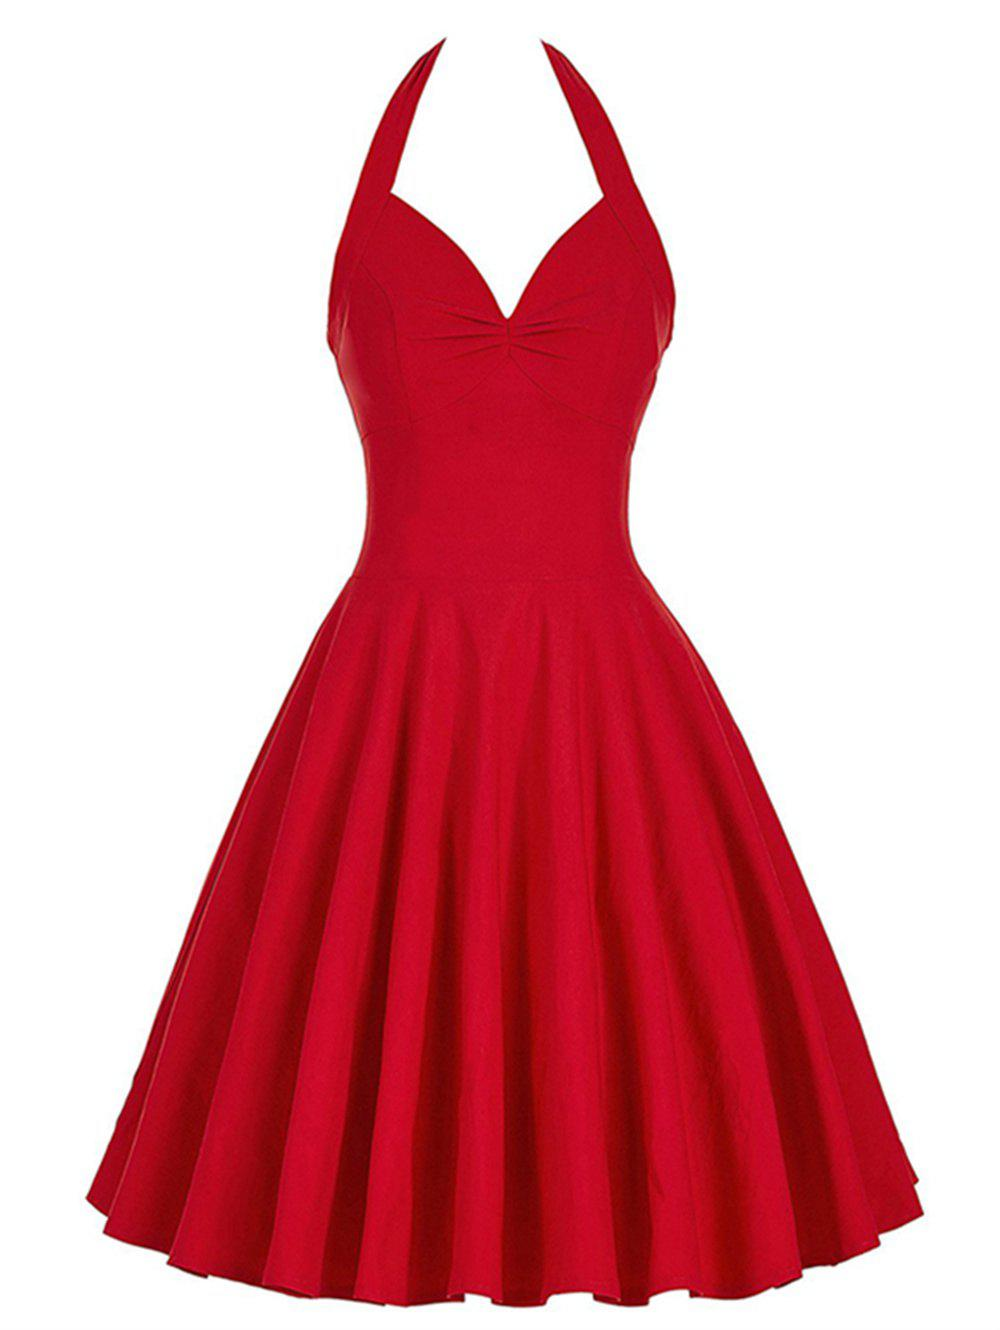 Lace-Up Halter Vintage Swing Corset Club Dress - RED L